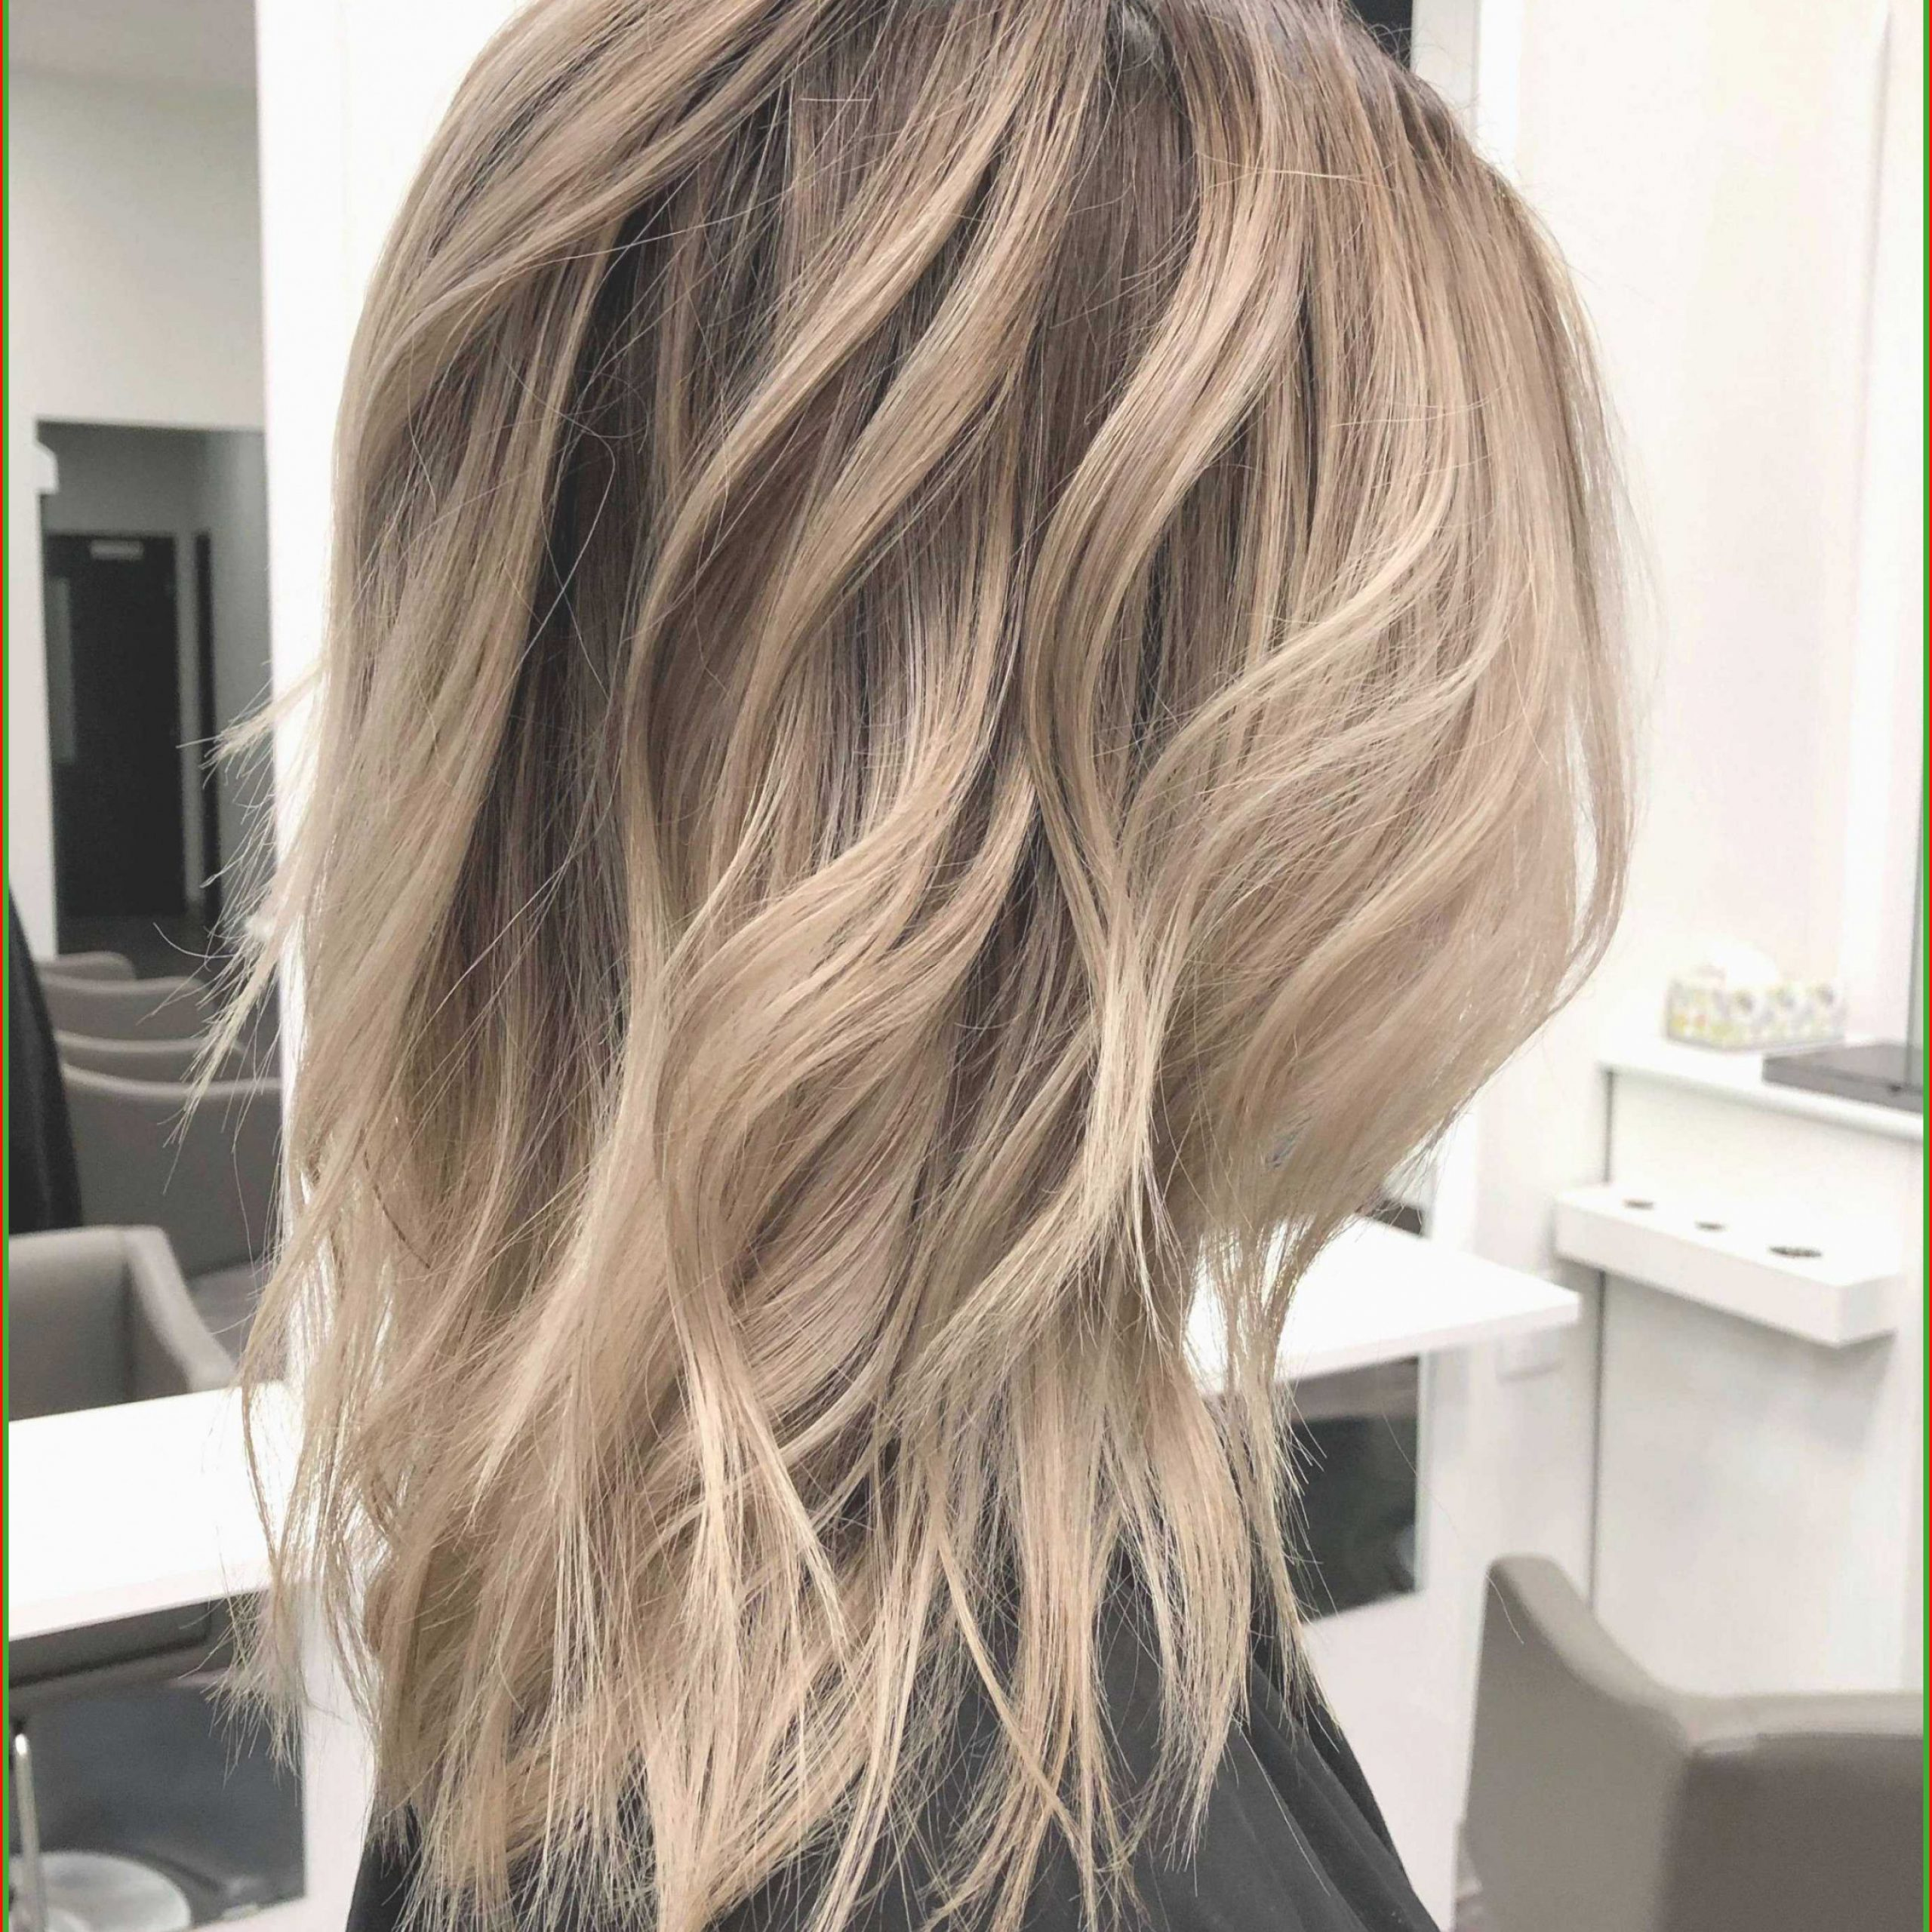 Favorite Black And Brown Choppy Bob Hairstyles With Regard To Amazing Medium Hairstyles Bobs Collection Of Bob Hairstyles (Gallery 19 of 20)